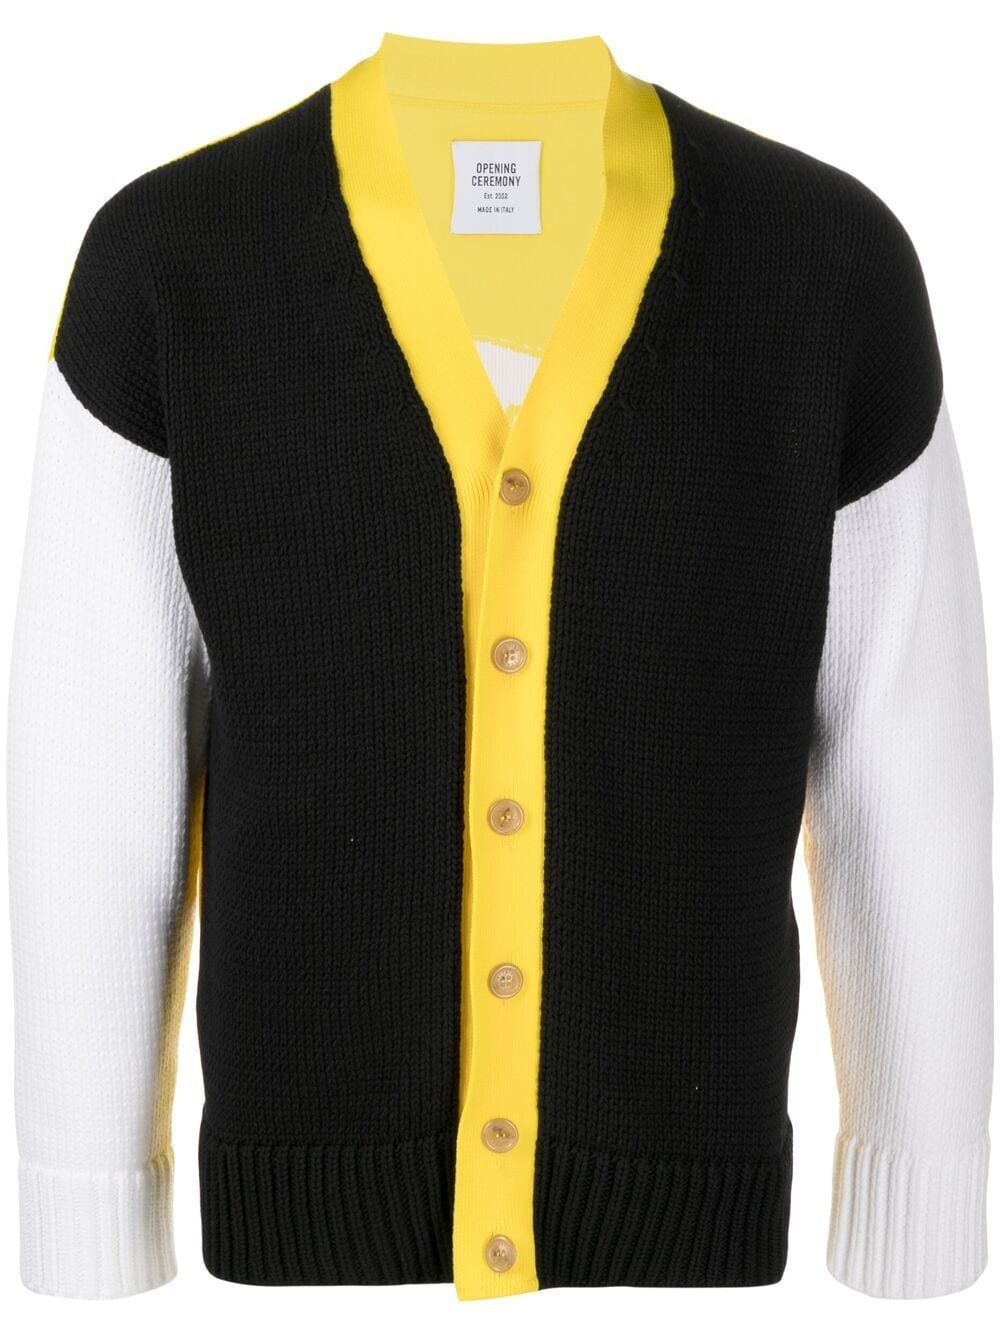 Picture of OPENING CEREMONY CARDIGAN